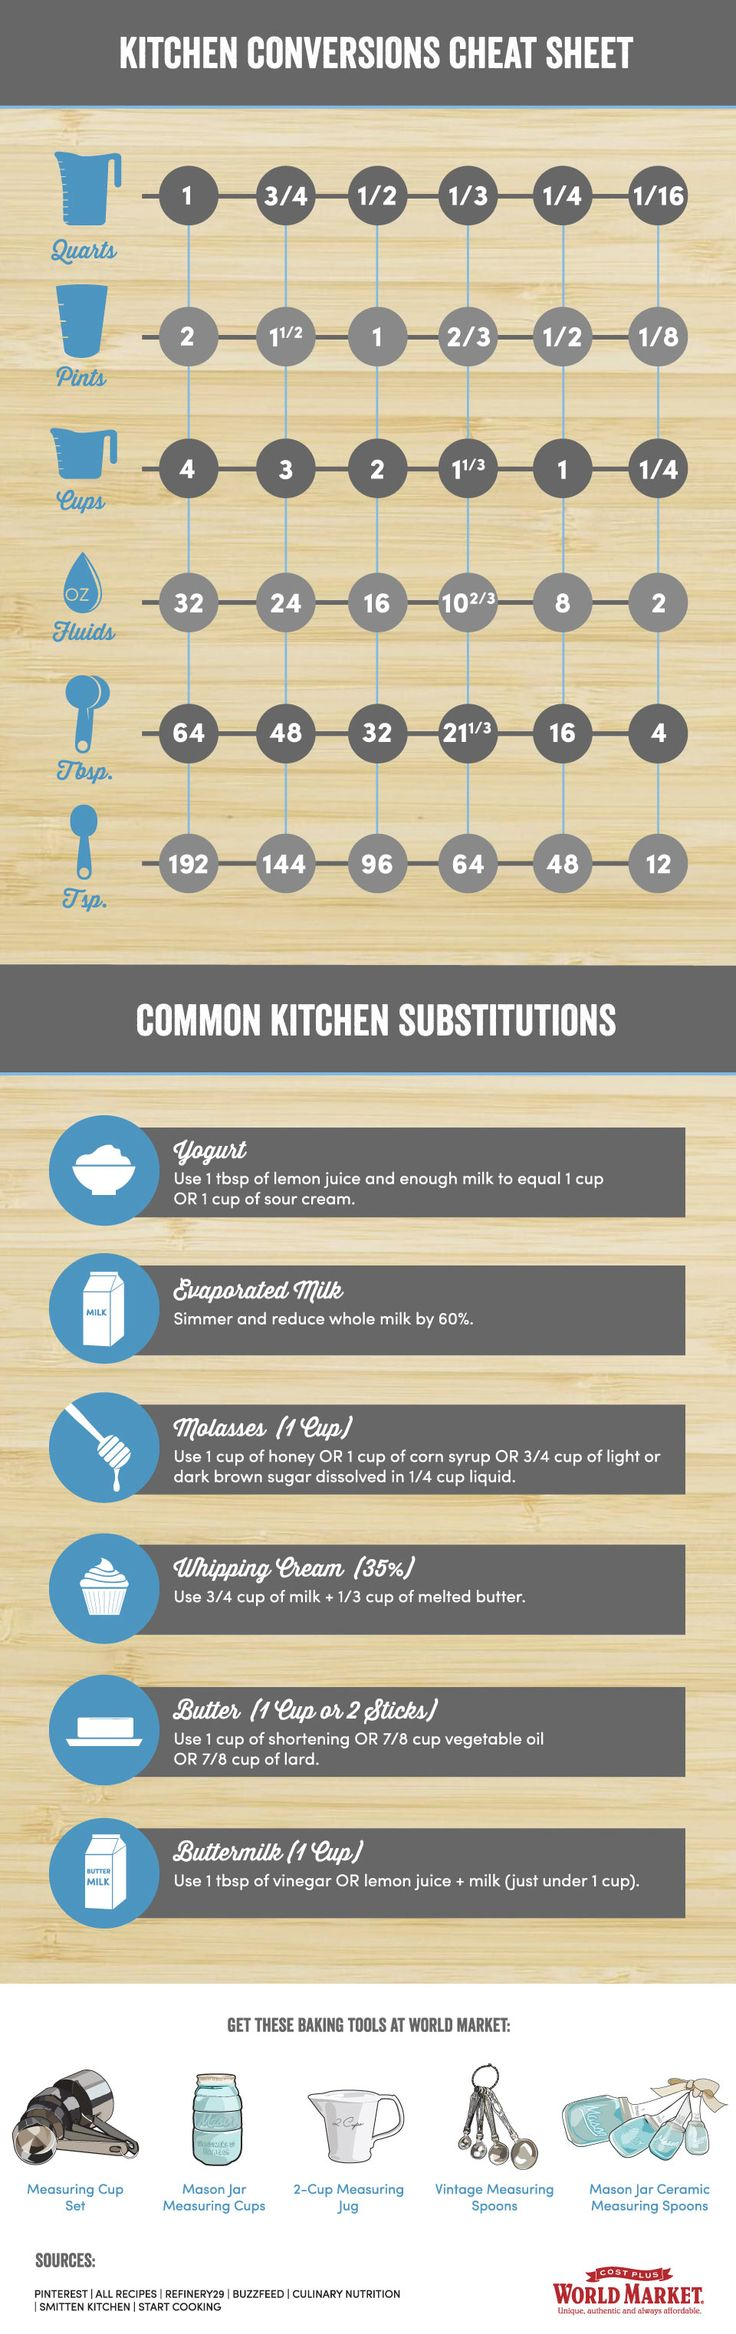 Kitchen Conversions 101 - Discover, a blog by World Market